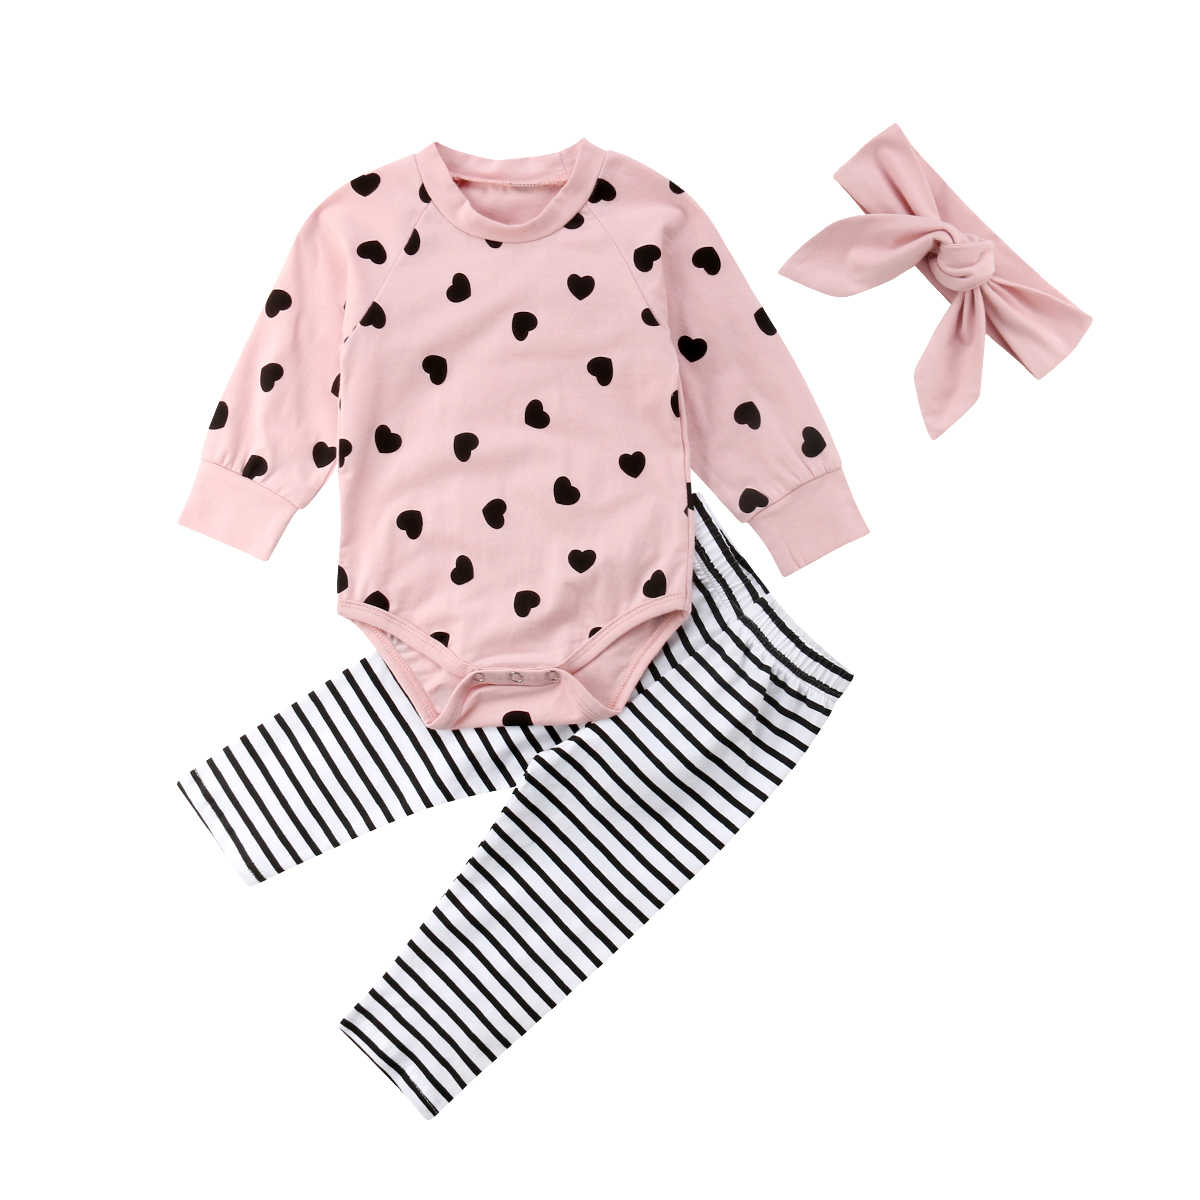 2018 Cute Newborn Infant Baby Girl Clothes Long Sleeve Pink Romper Tops Striped Pant Outfit Kid Clothing Set